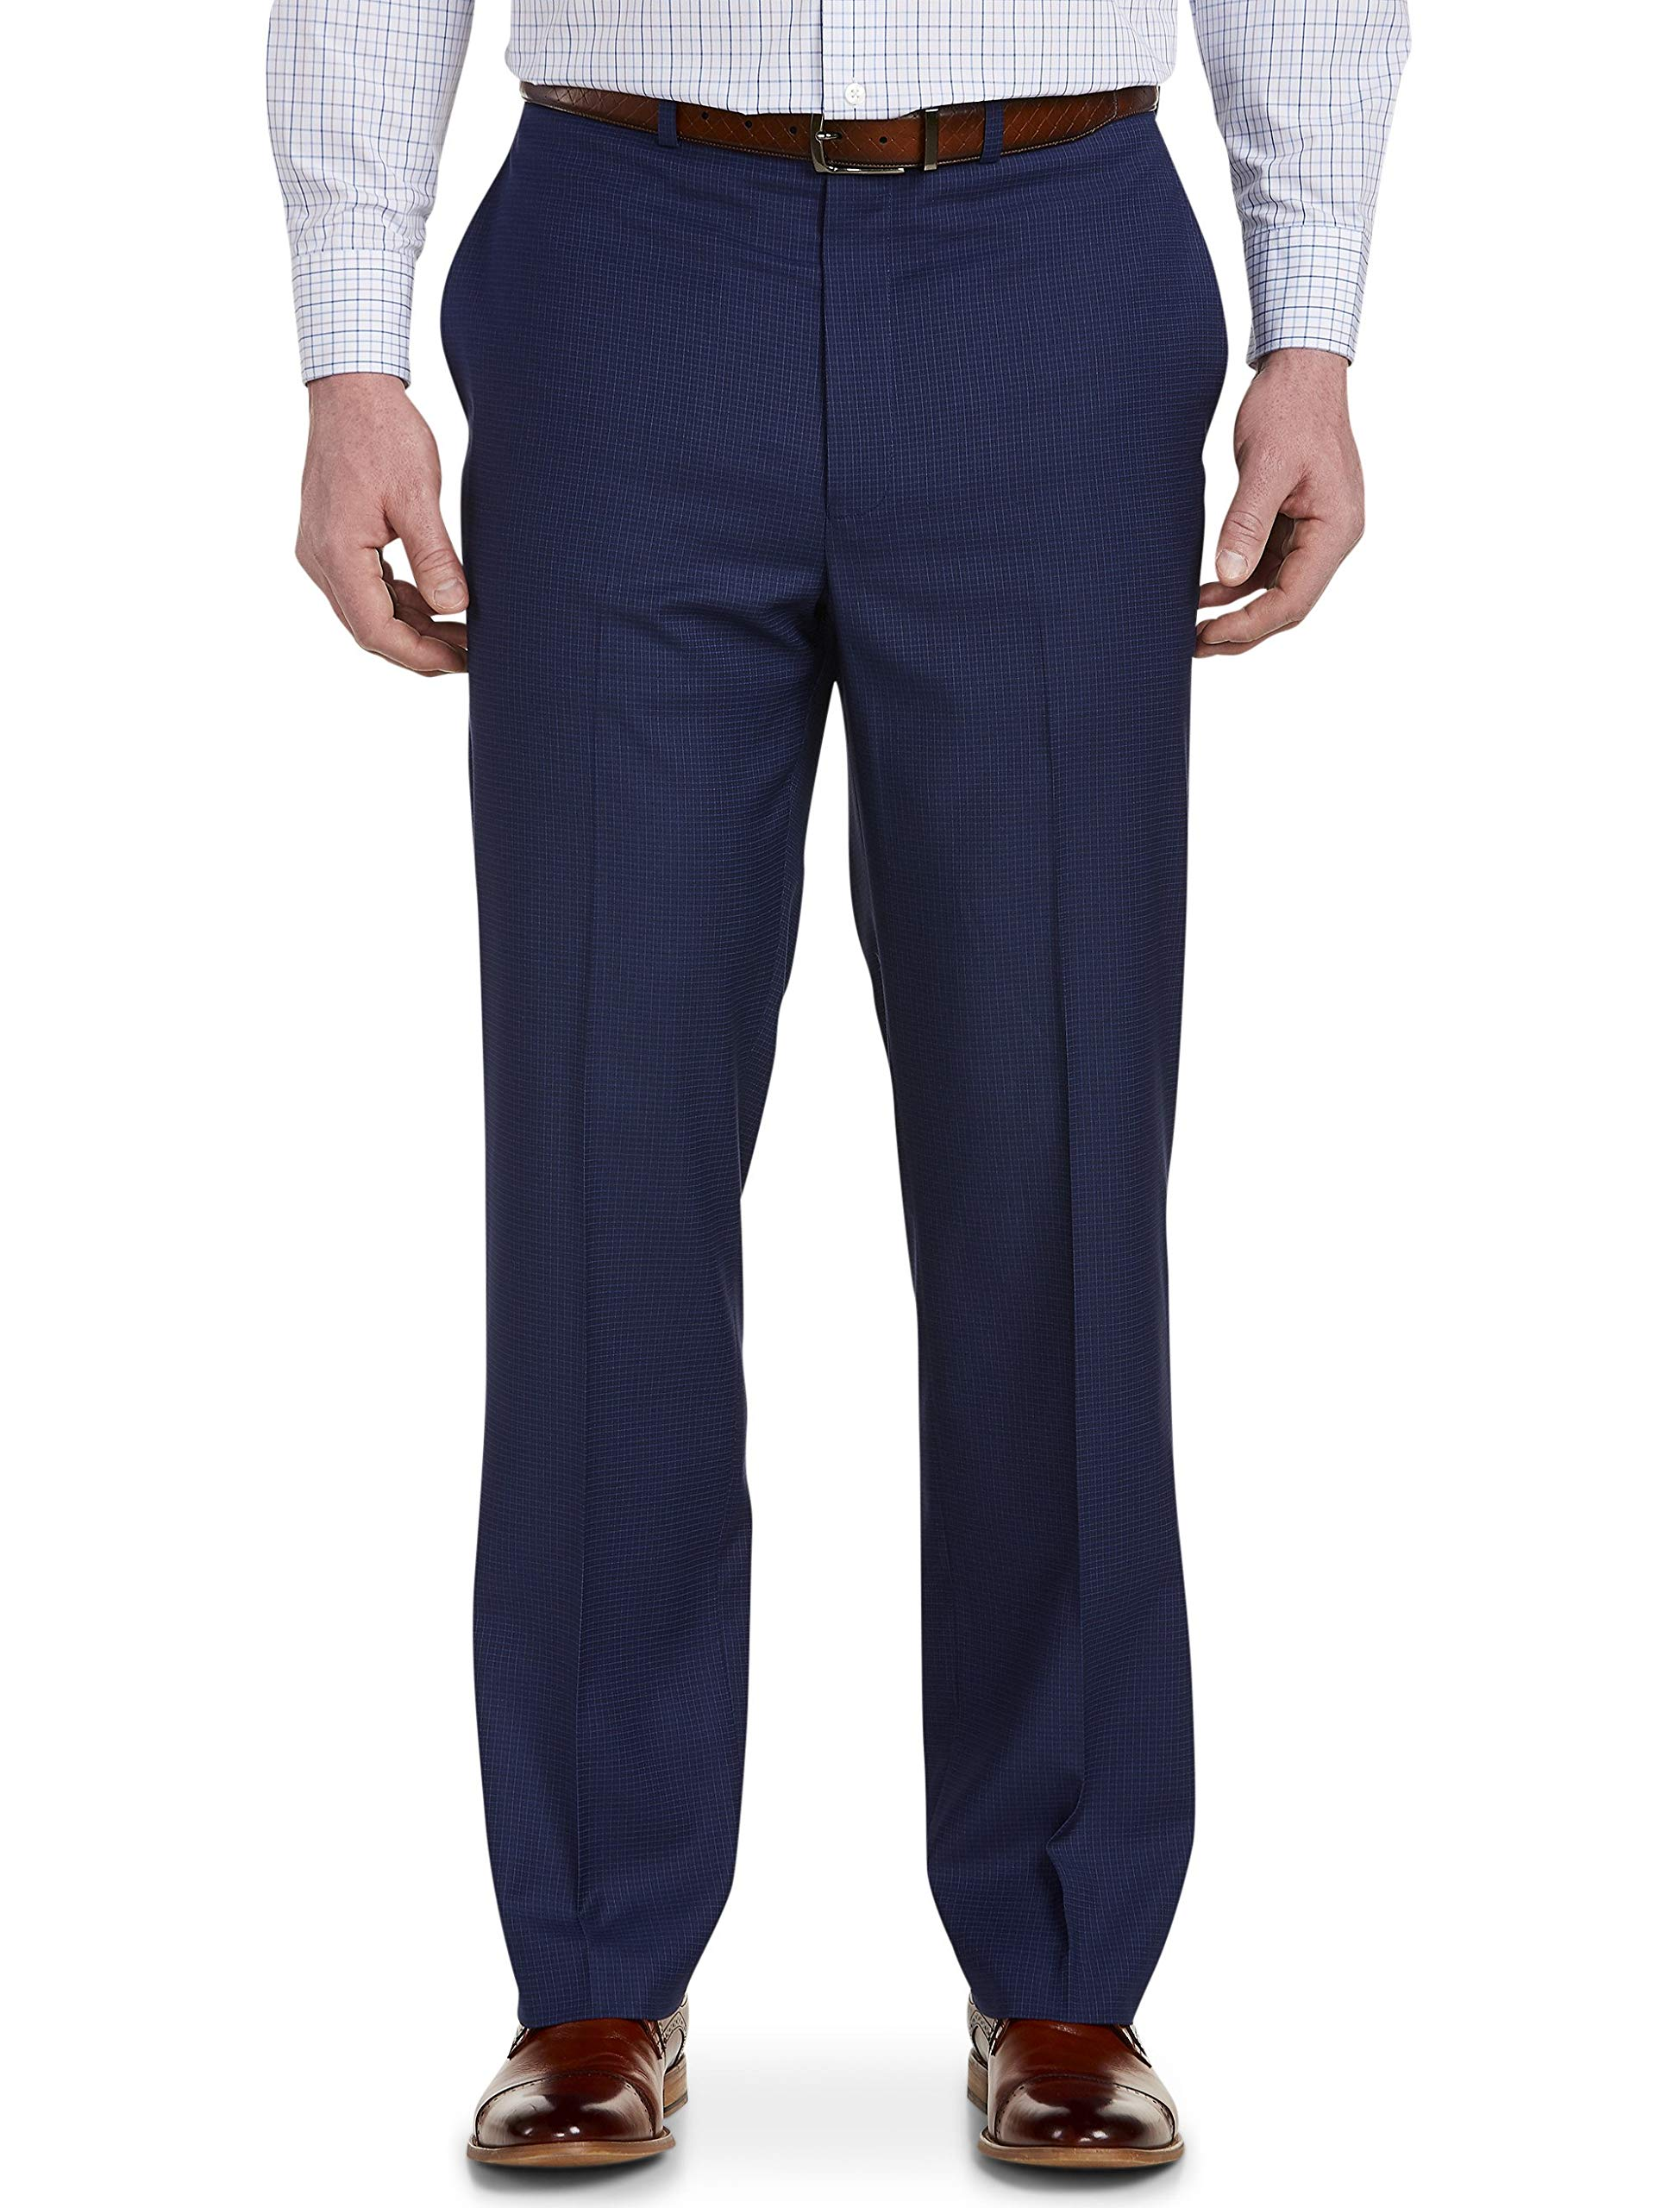 Geoffrey Beene Big and Tall Mini Check Flat-Front Suit Pants Blue by Geoffrey Beene